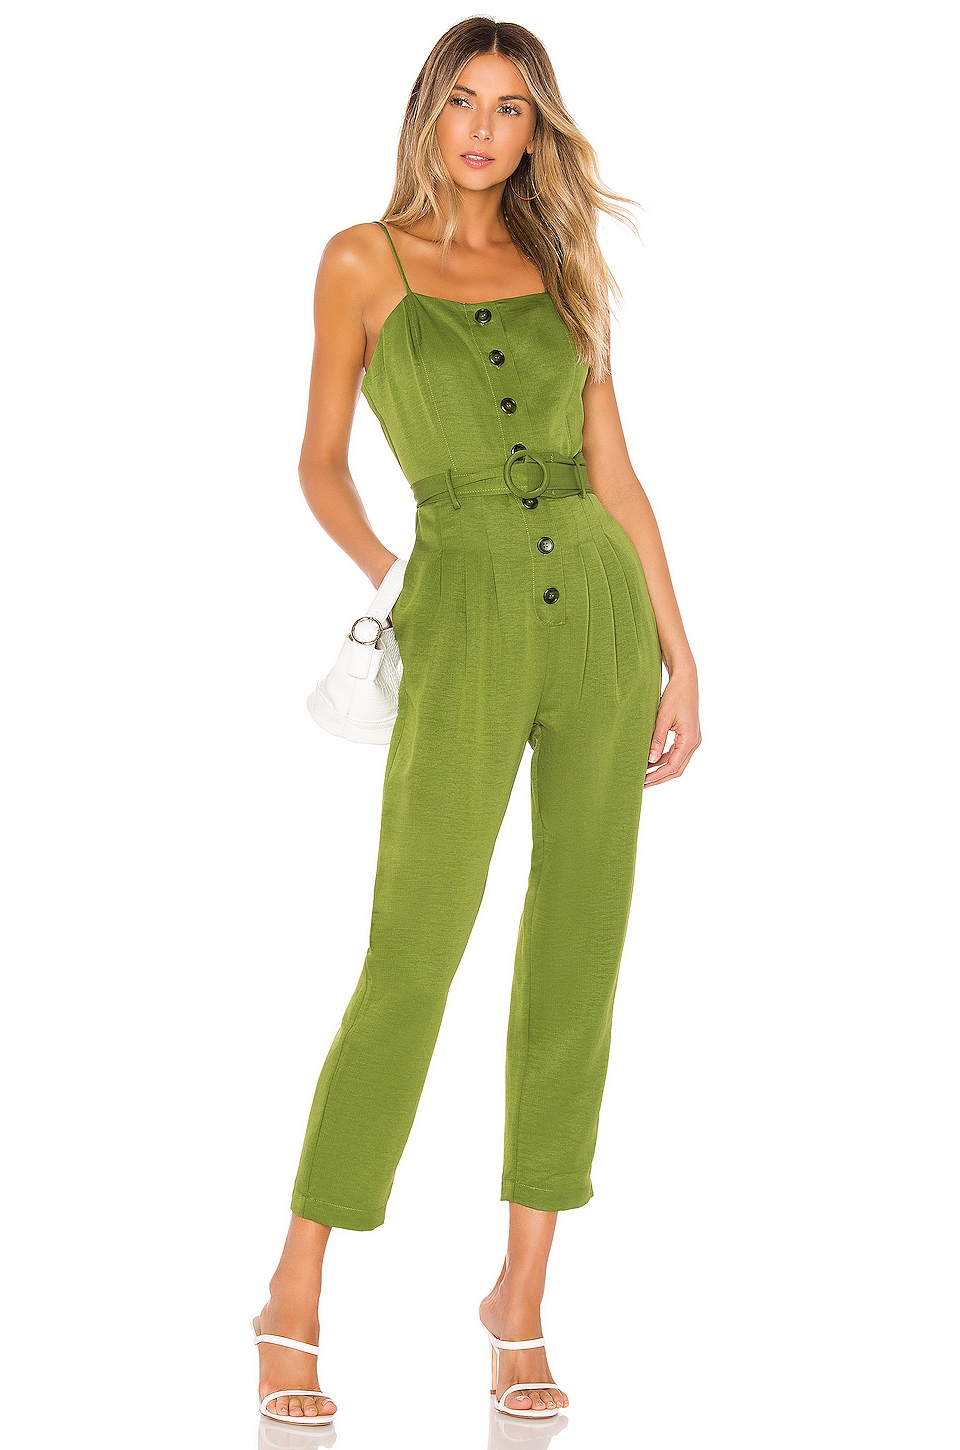 J.O.A. Strapless Belted Jumpsuit in Moss